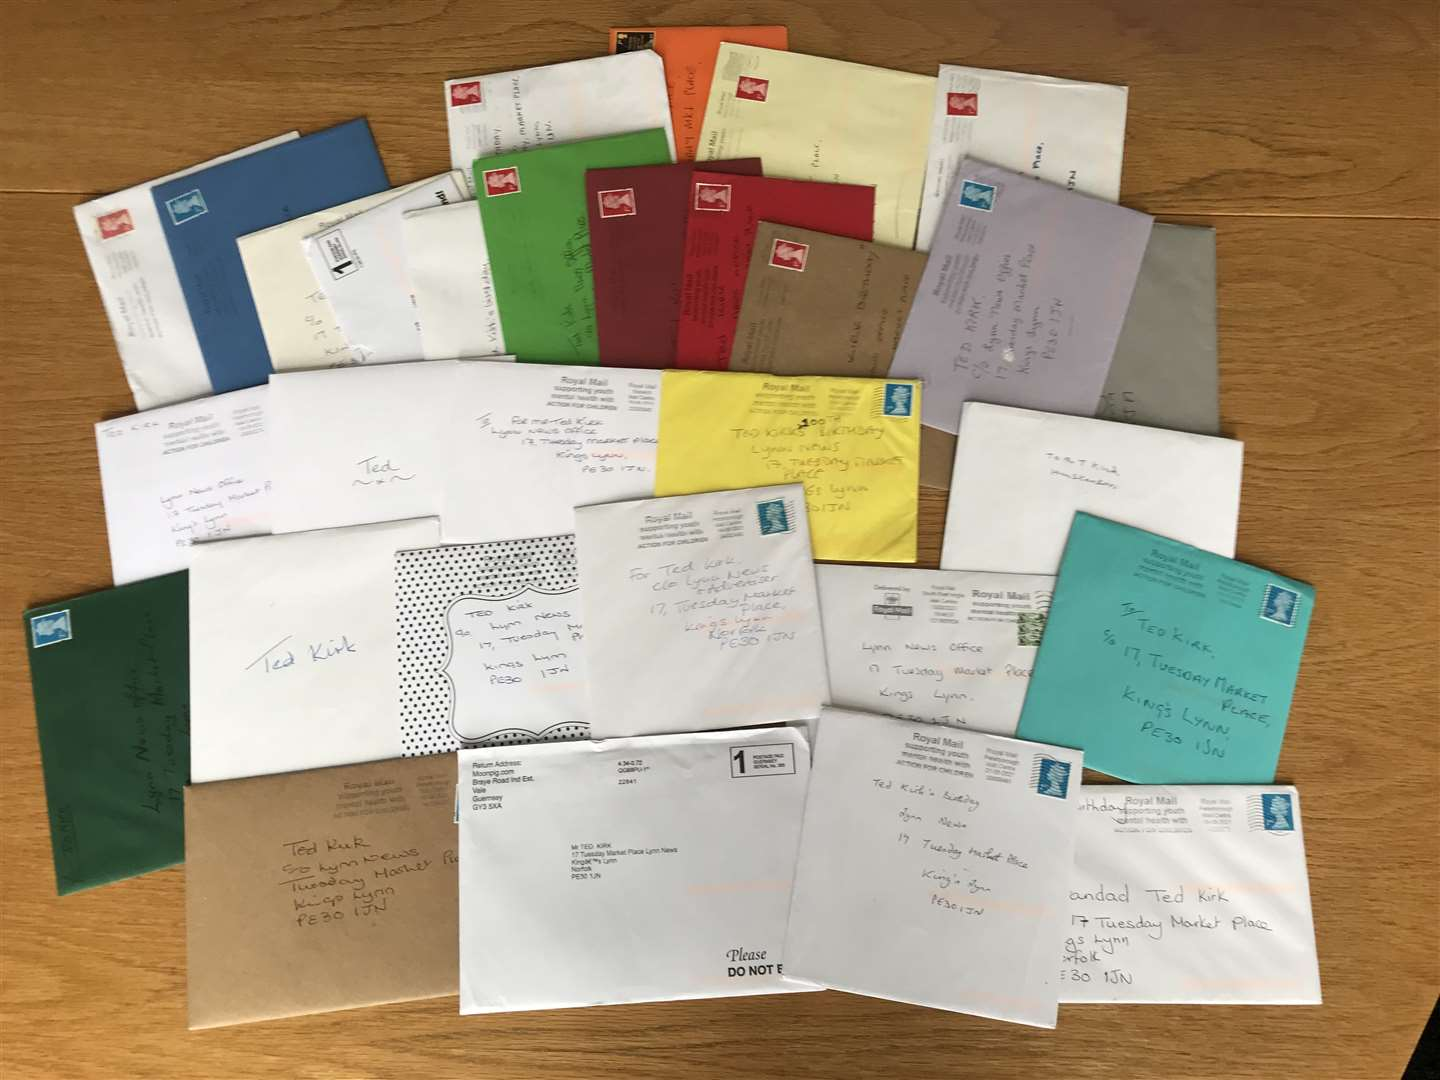 Lynn News readers have been sending in birthday cards for Ted Kirk in a bid that he receives at least 100 cards for his milestone centenary birthday. (50606169)